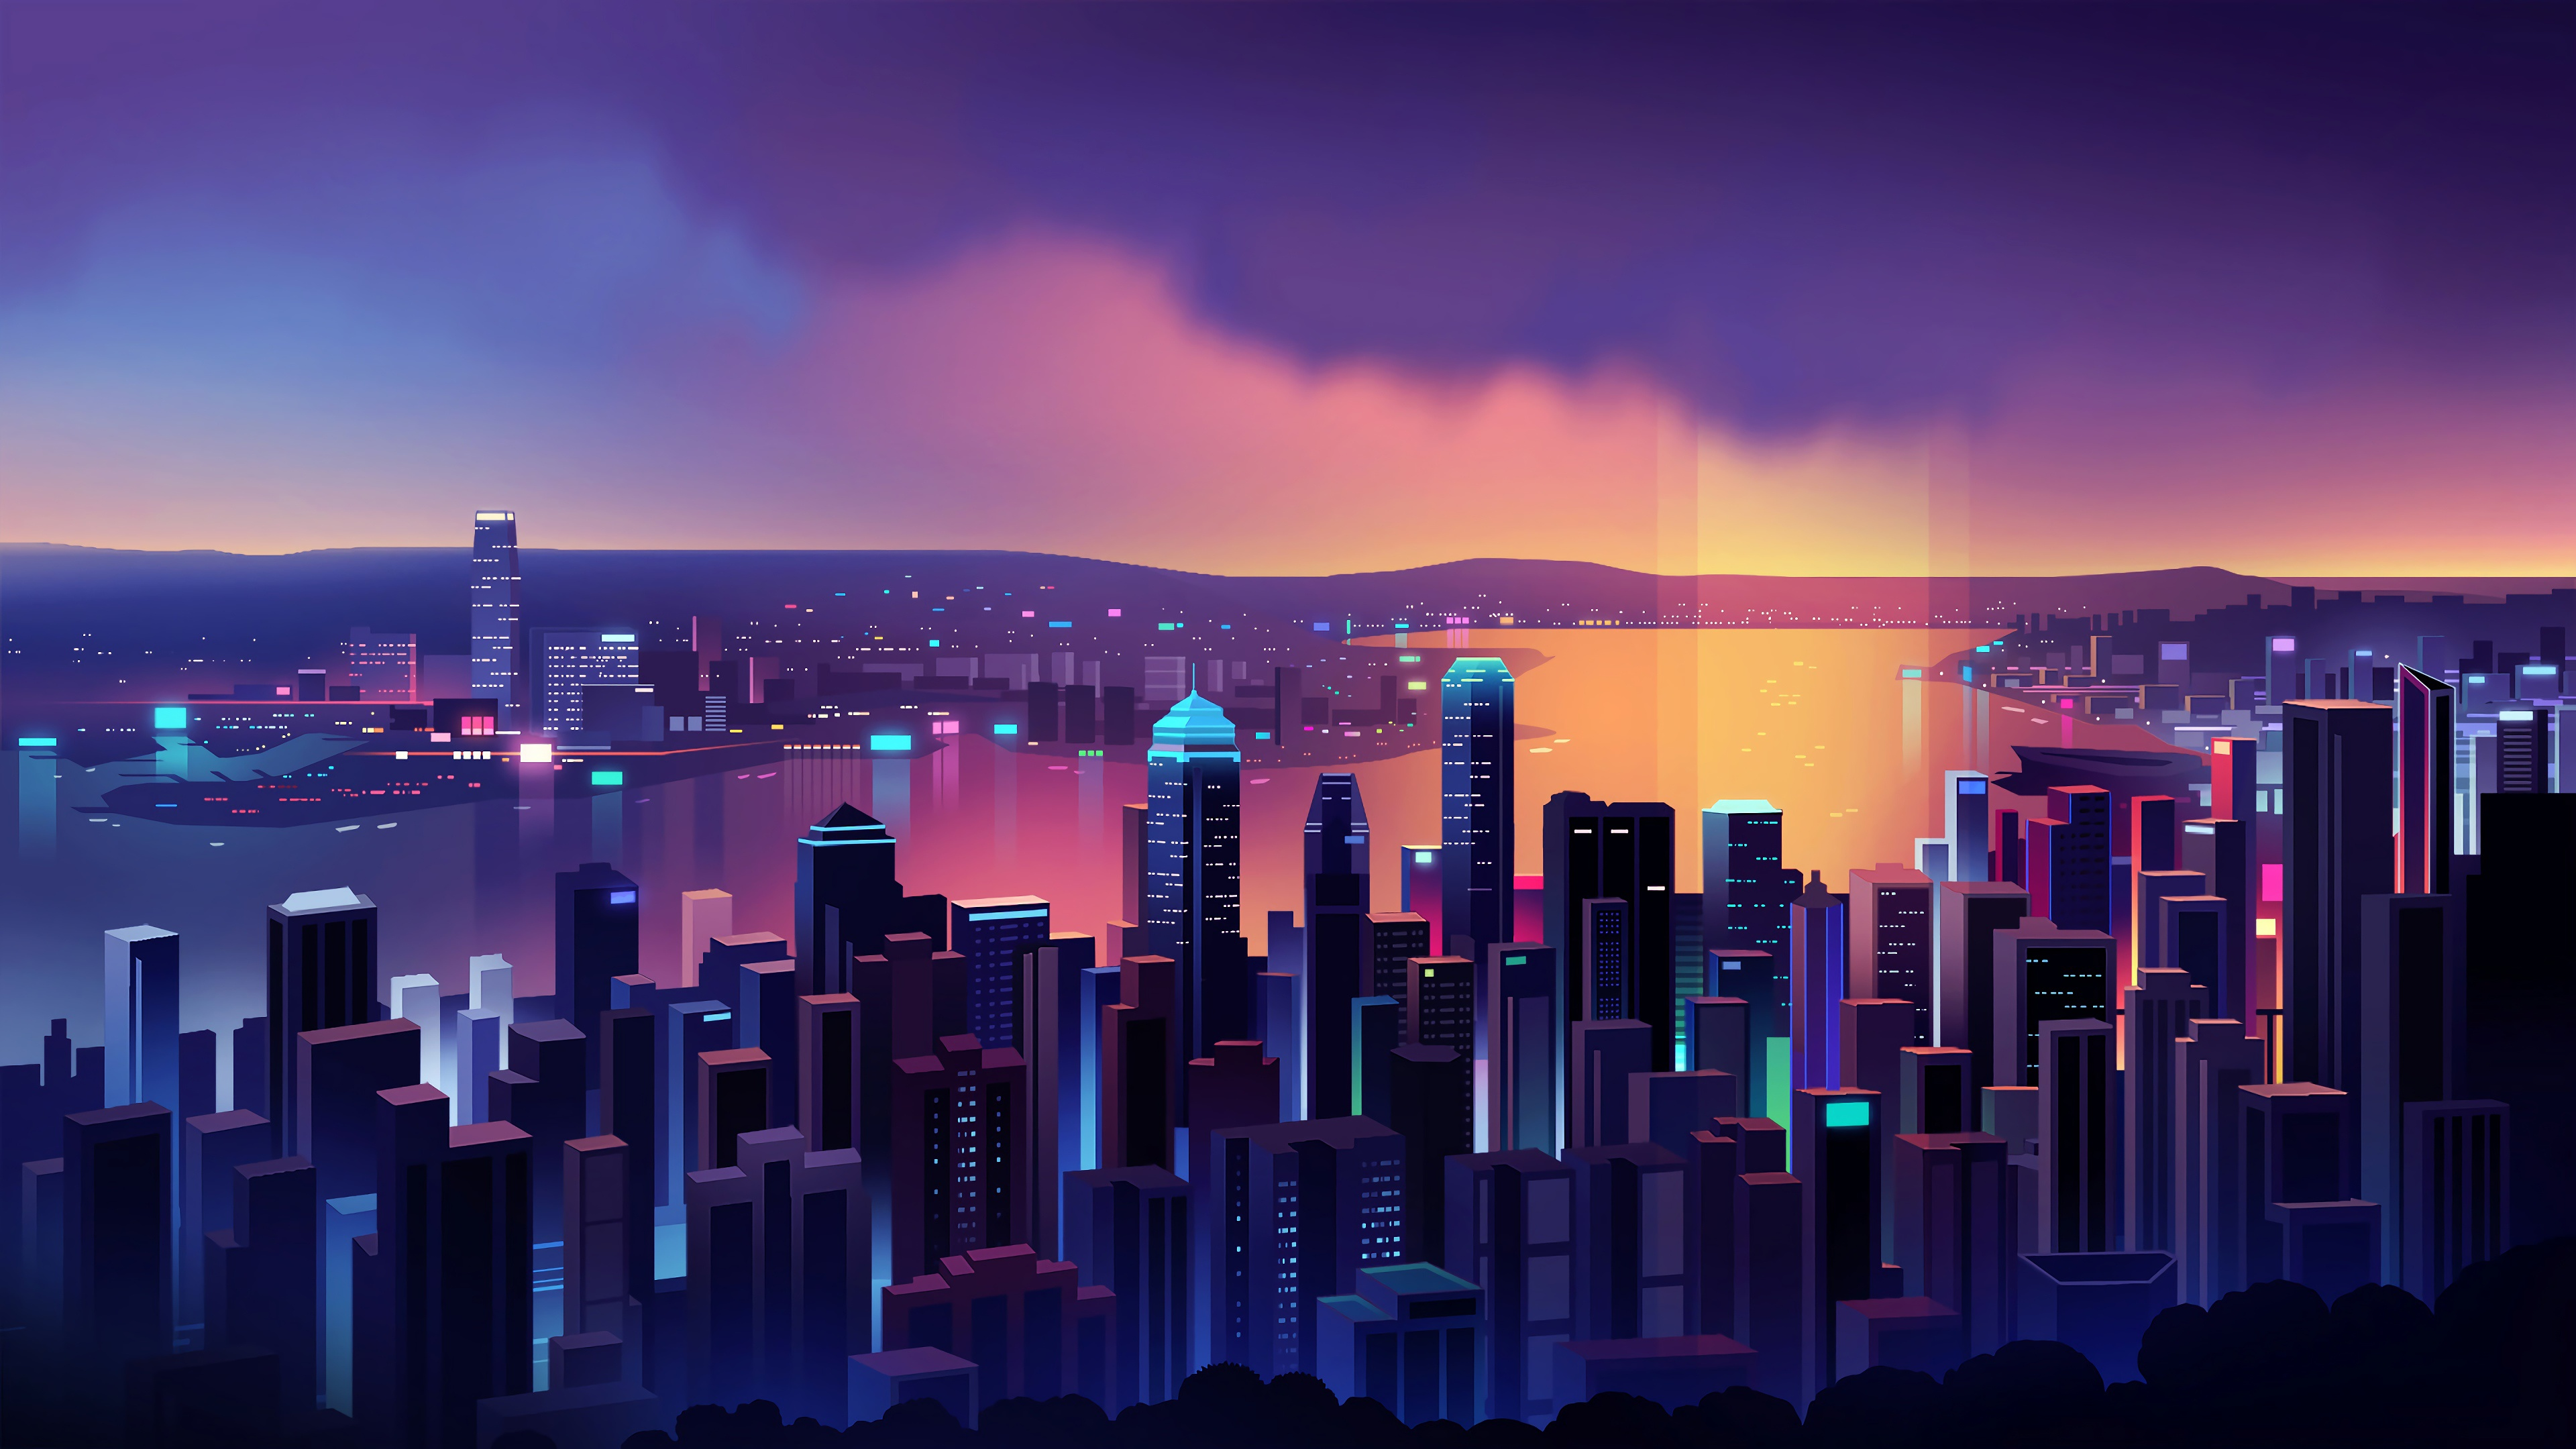 General 3840x2160 digital digital art artwork illustration minimalism vector vector art vector graphics city city lights lights neon neon lights cityscape architecture modern building tower skyscraper water sea landscape dark dusk sun rays Sun skyline Romain Trystram sky skyscape colorful glowing Flatdesign Hong Kong